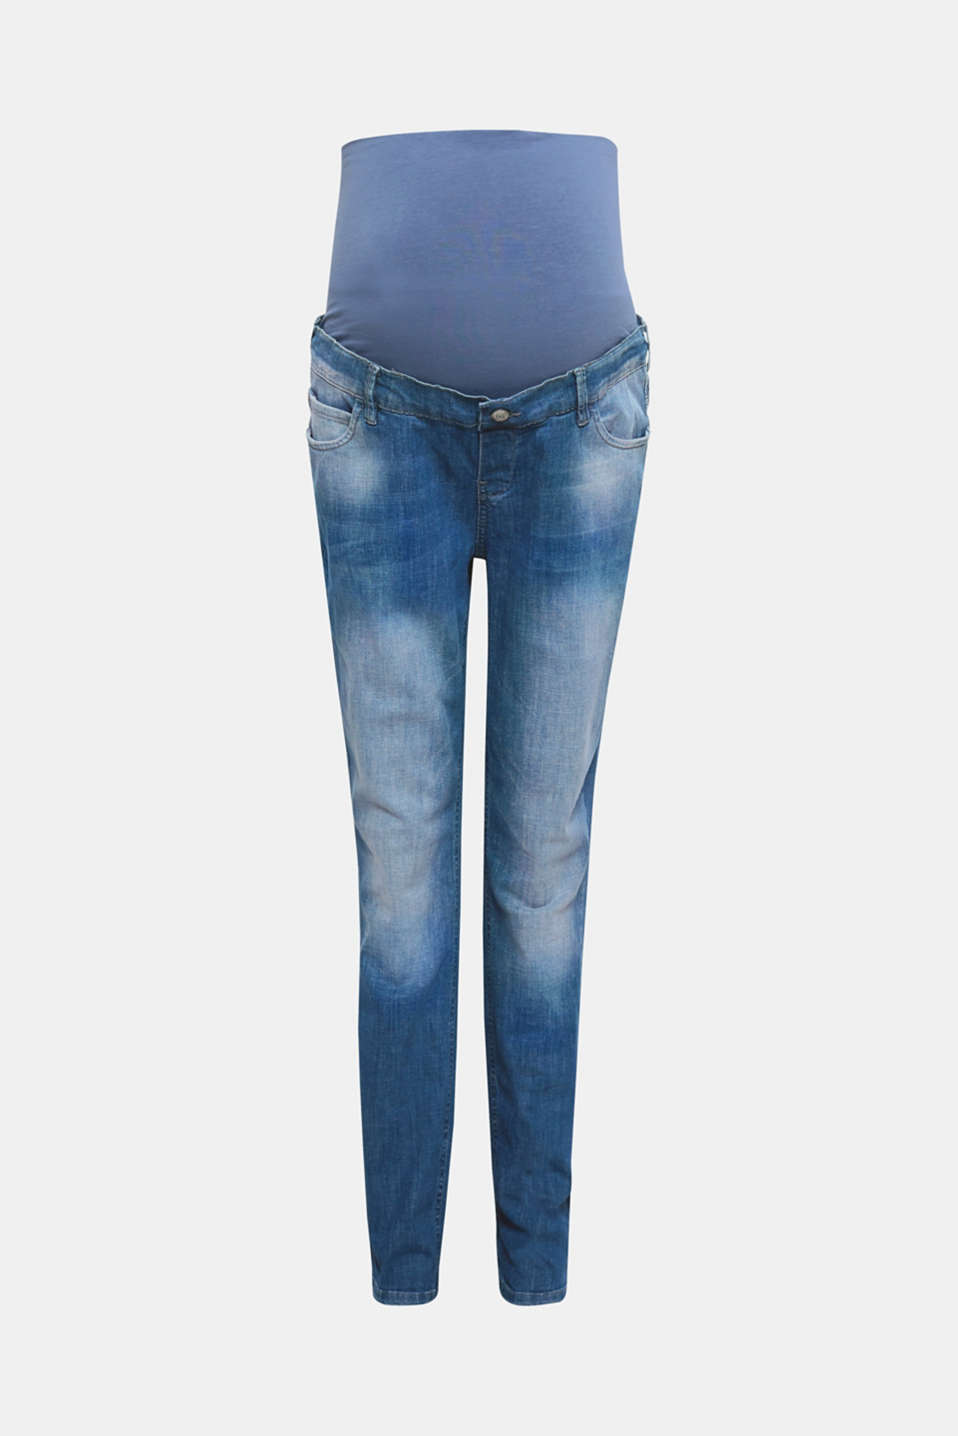 These over-the-bump boyfriend jeans with stylish bleached effects, in a comfortable cut are indisputably cool!